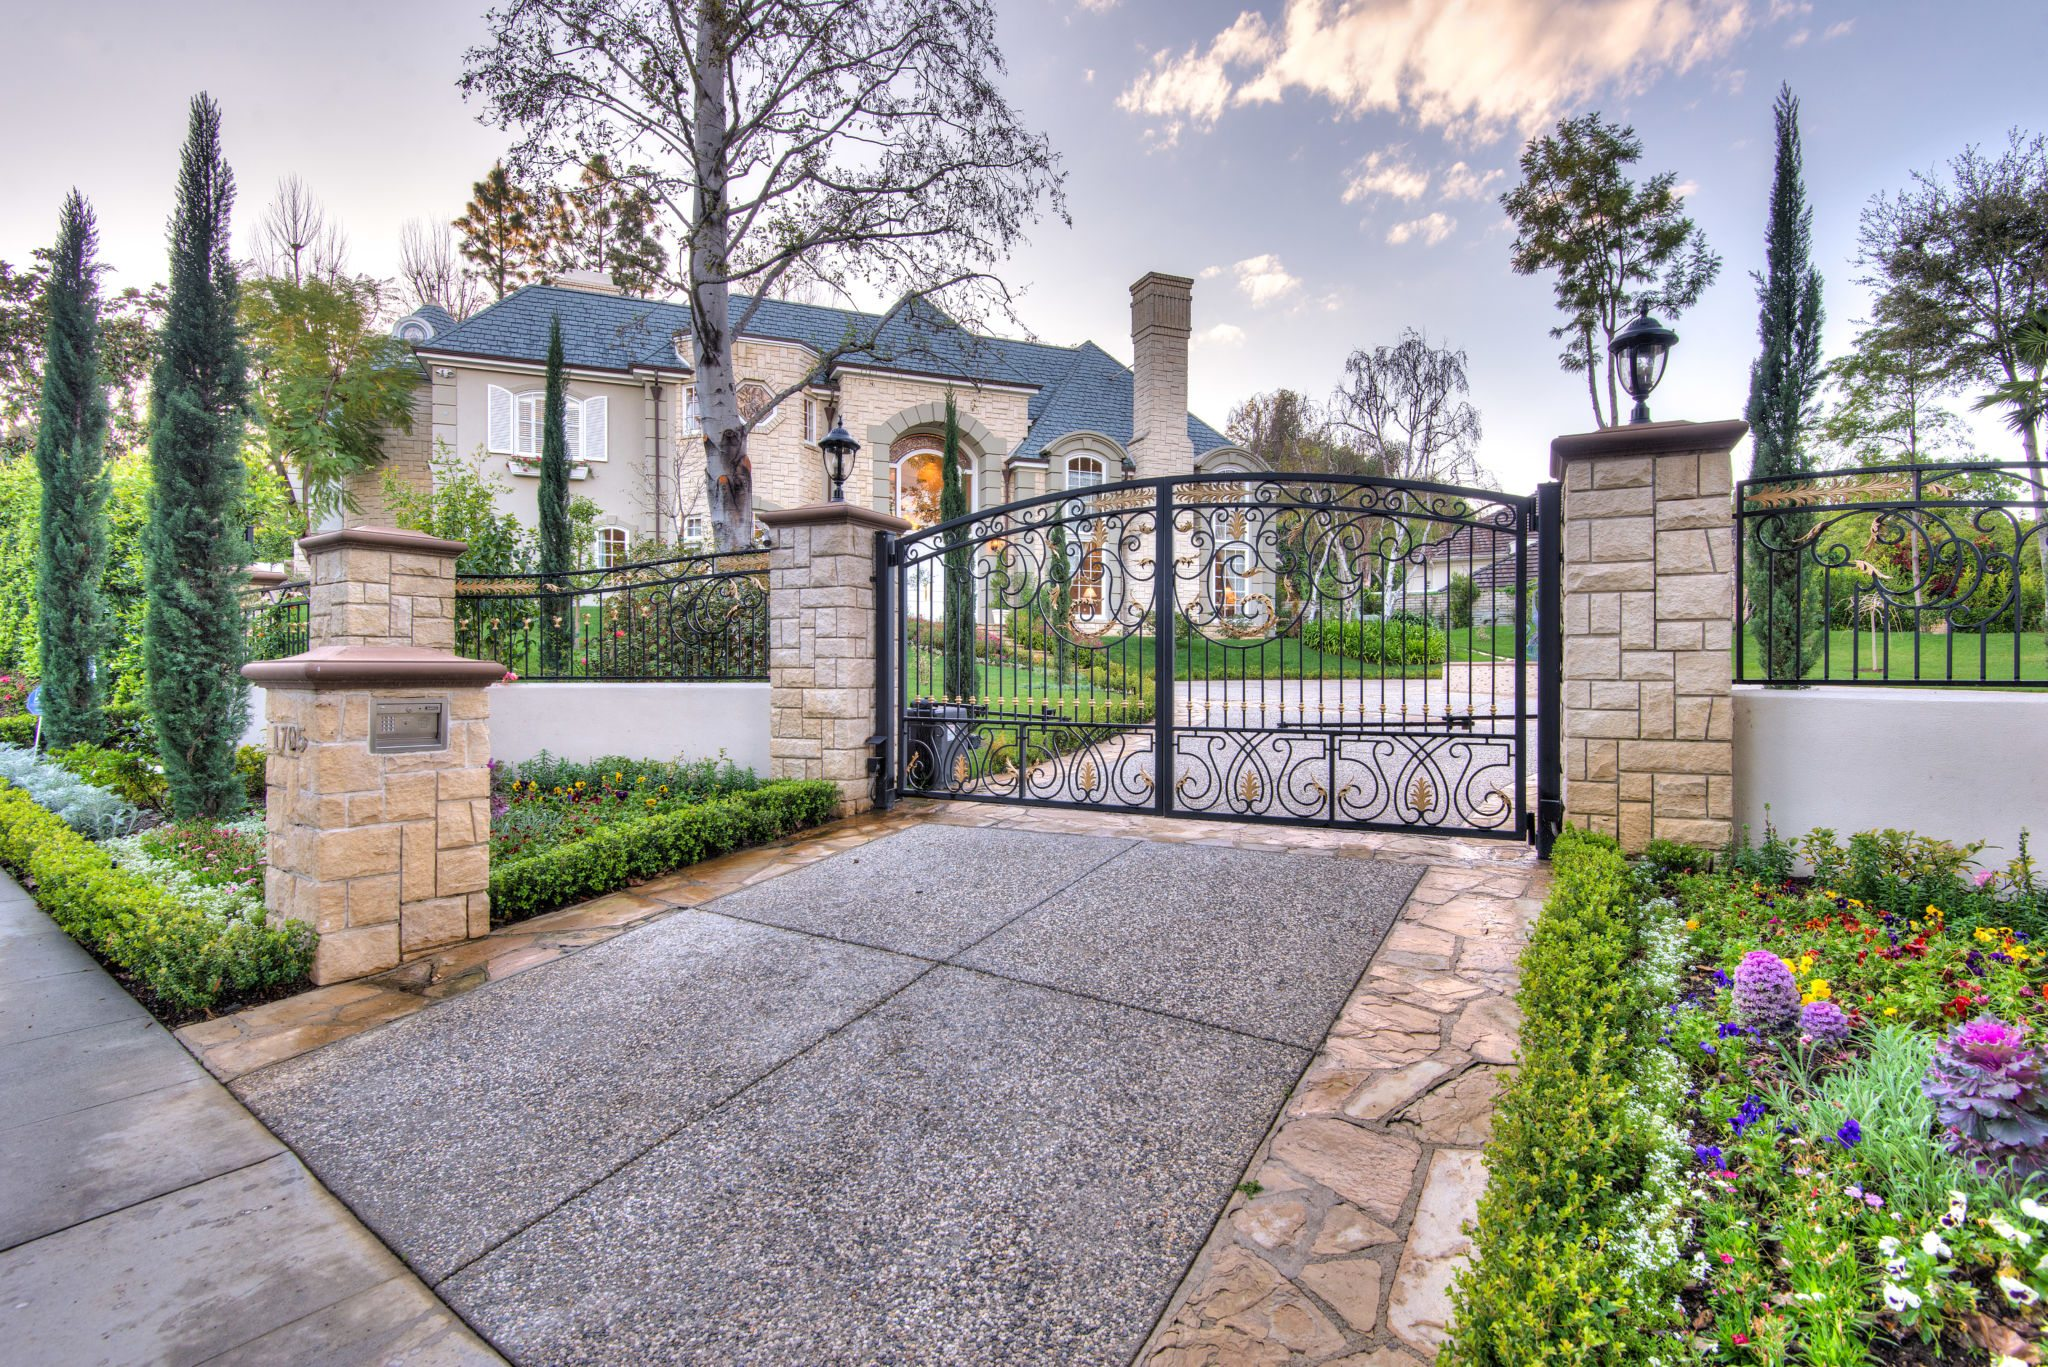 Beverly Hills, Celebrity Homes, Home + Design, Los Angeles, Luxury on michael jackson designs, flowers designs, home decor designs, martha stewart designs, photography designs, home improvement designs, beyonce designs, interiors designs, health designs, foreclosure designs, tips designs, real estate designs, design designs, kanye west designs, mansion designs, fashion designs, victoria beckham designs,